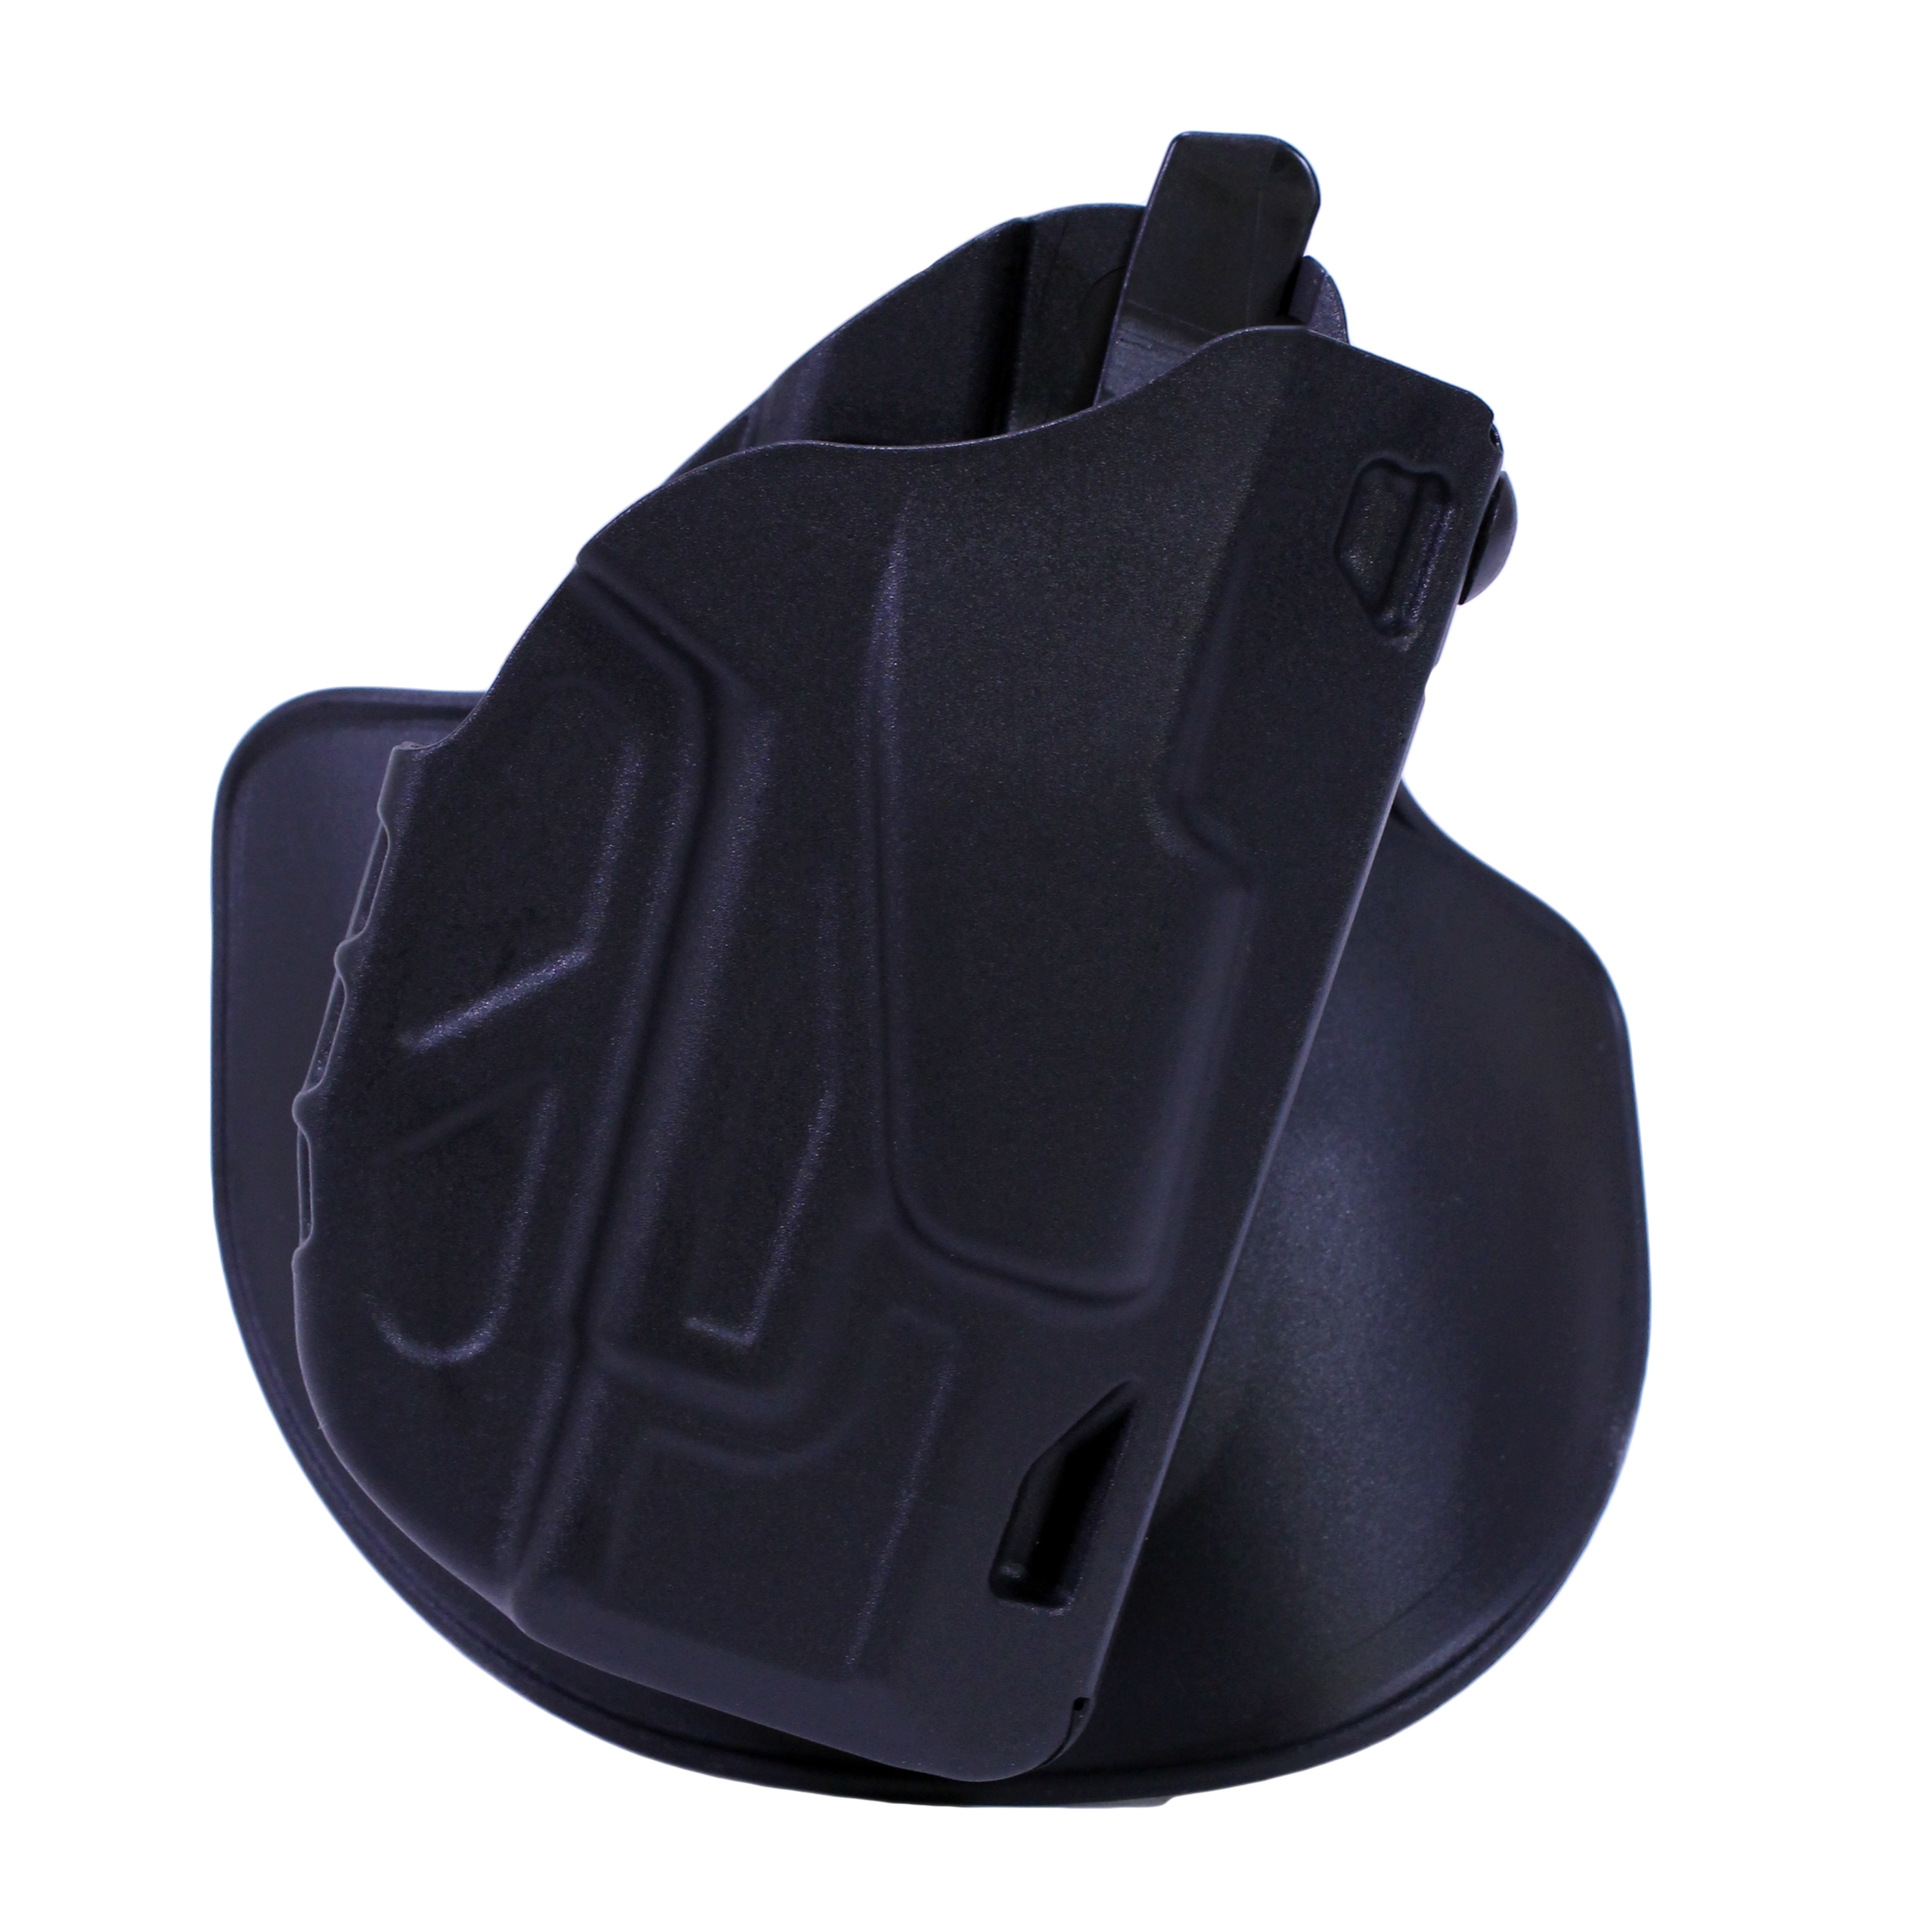 Safariland 7TS ALS Open Top Concealment Paddle Holster Glock 26 27, Plain Black, Right Hand by SAFARILAND